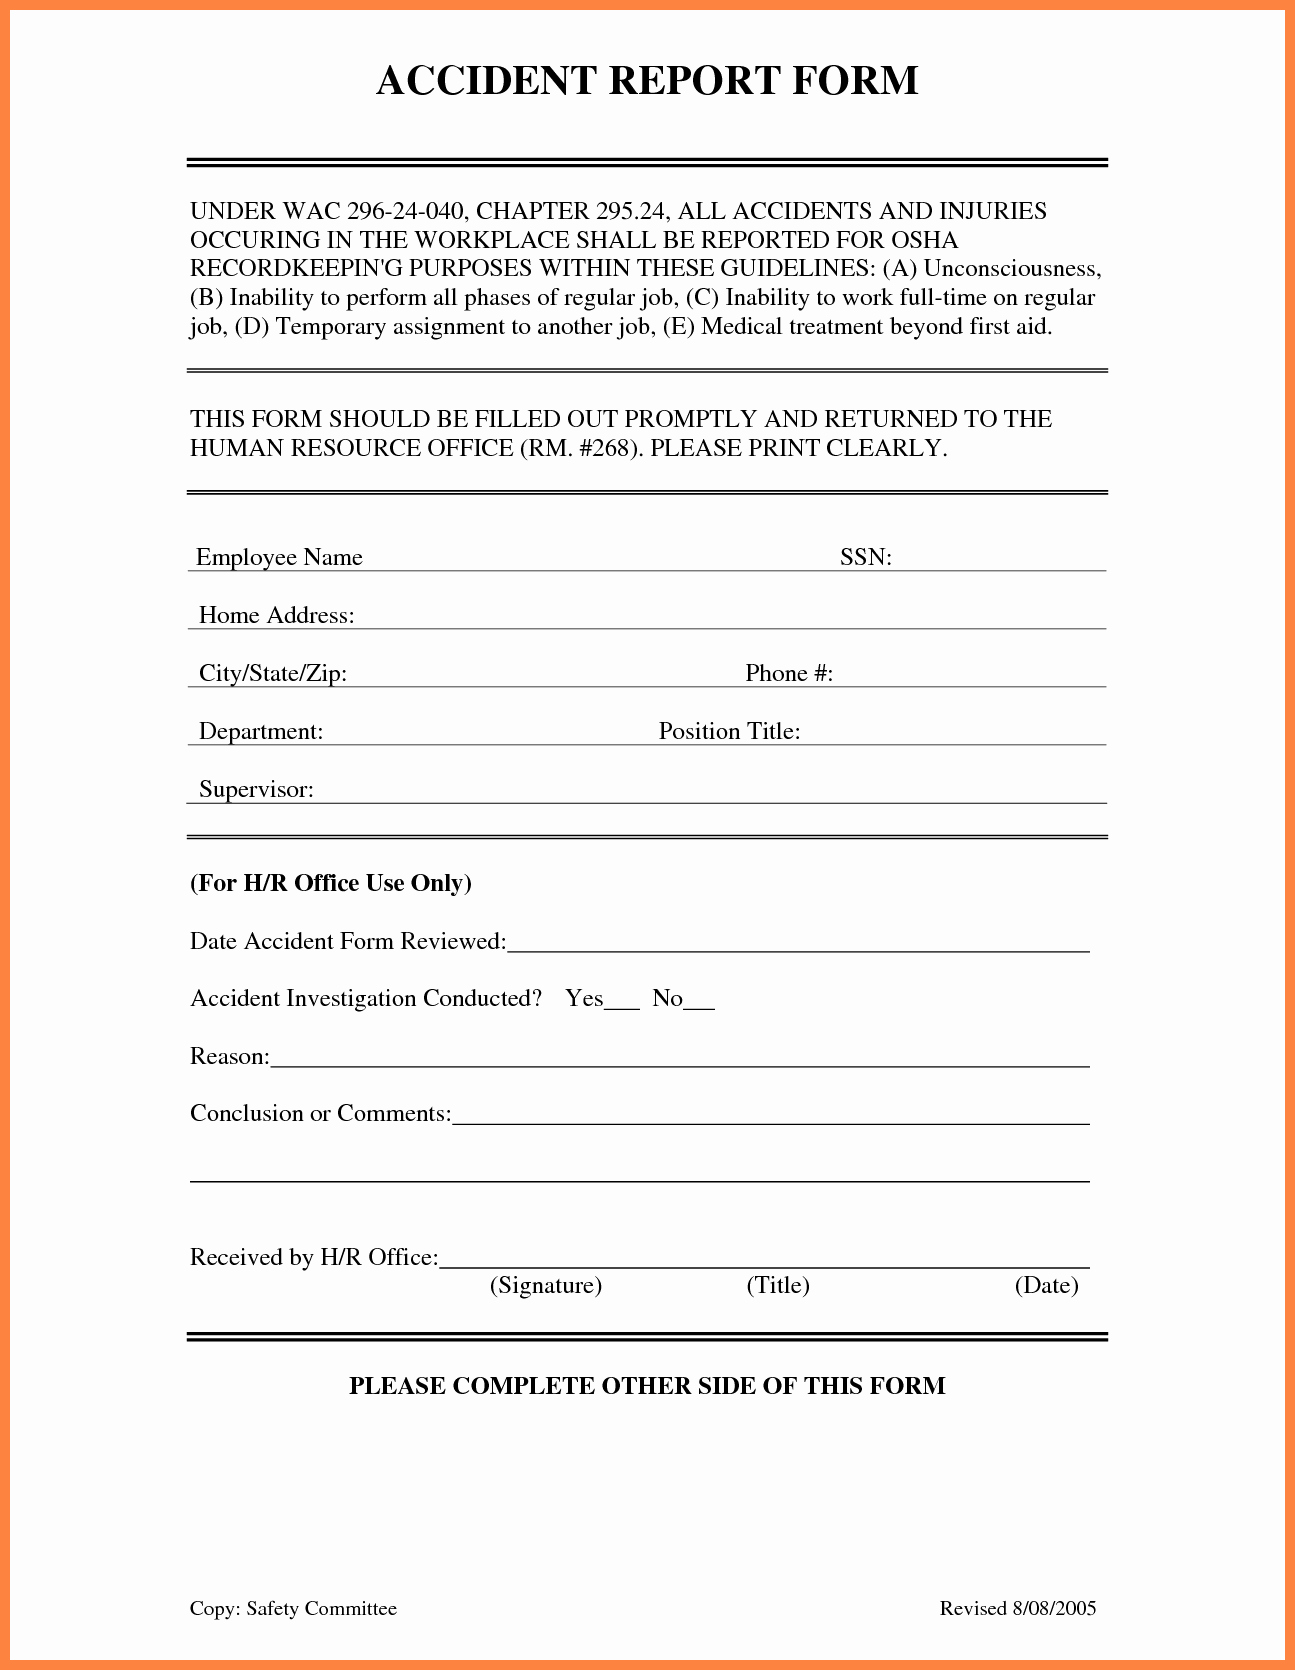 Incident Report form Template Fresh 4 Accident Incident Report form Template